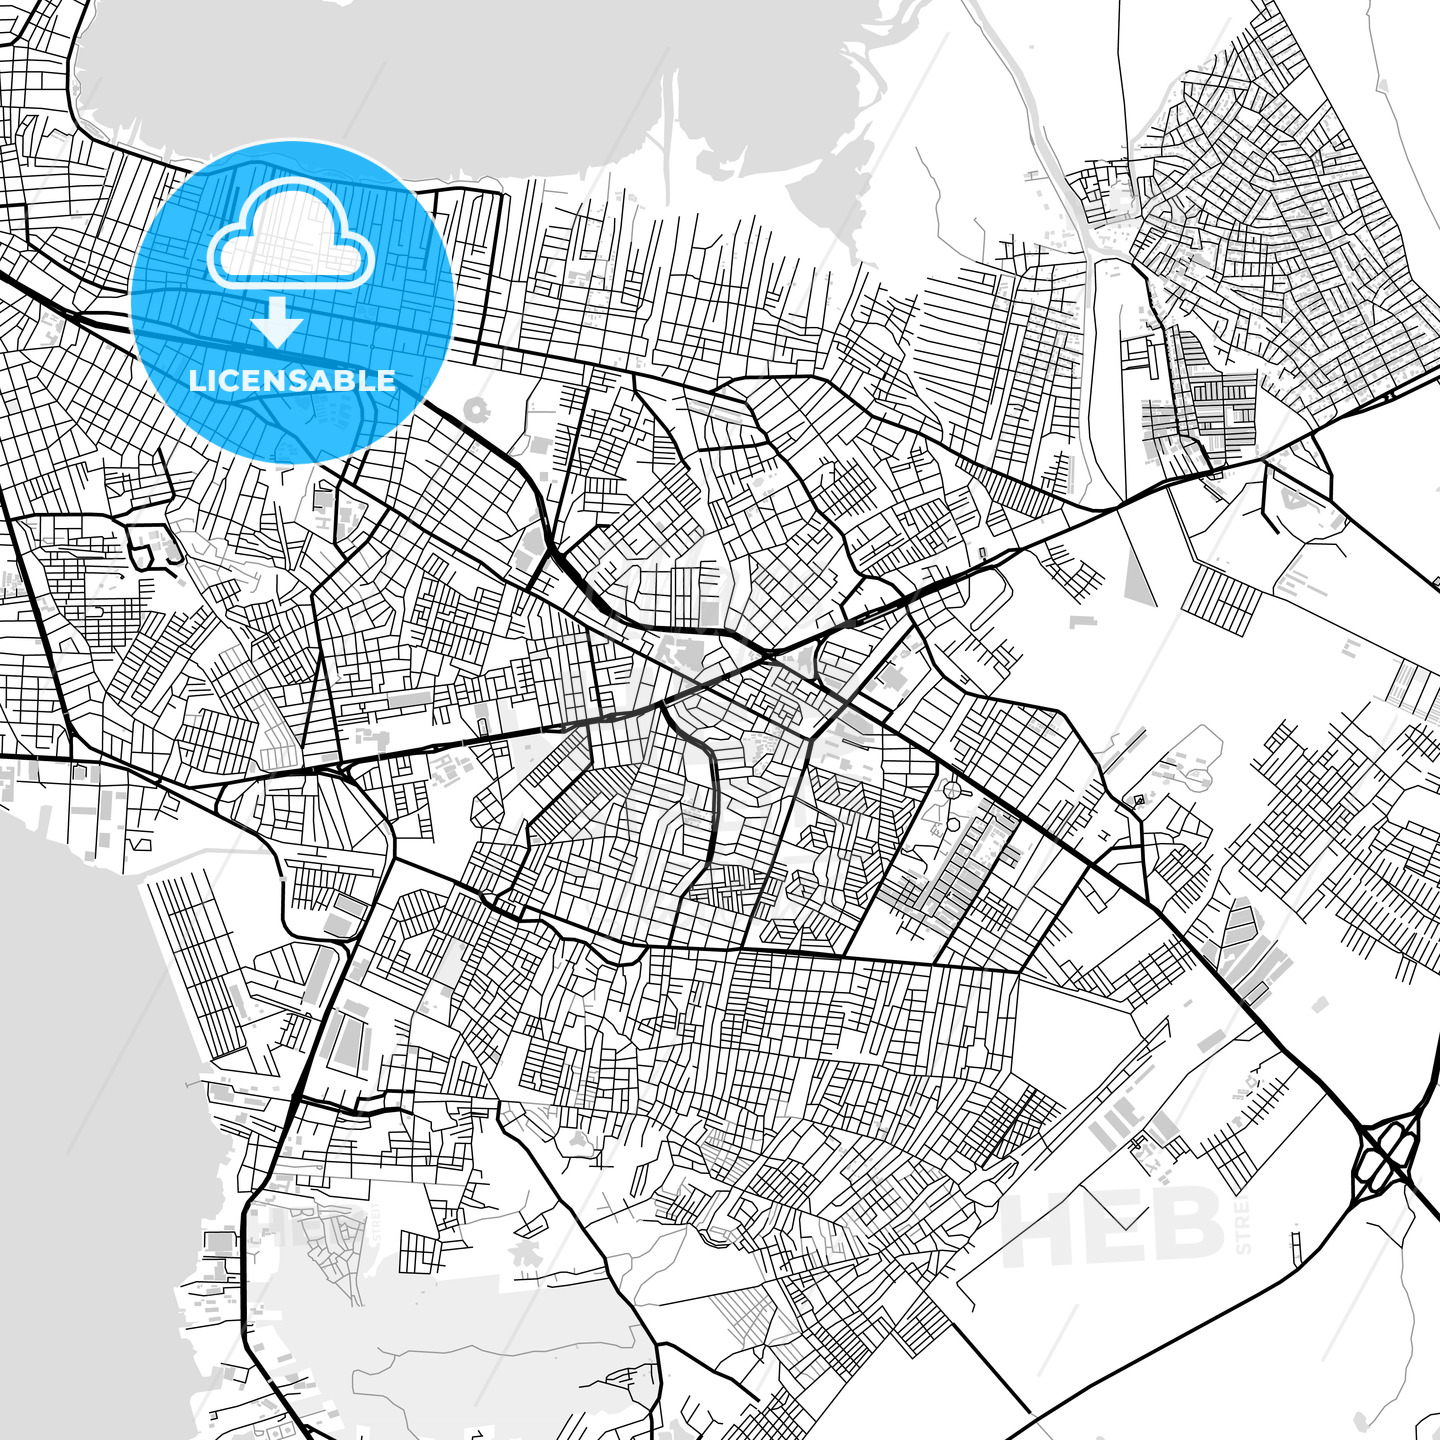 Downtown map of Cartagena, Spain - HEBSTREITS